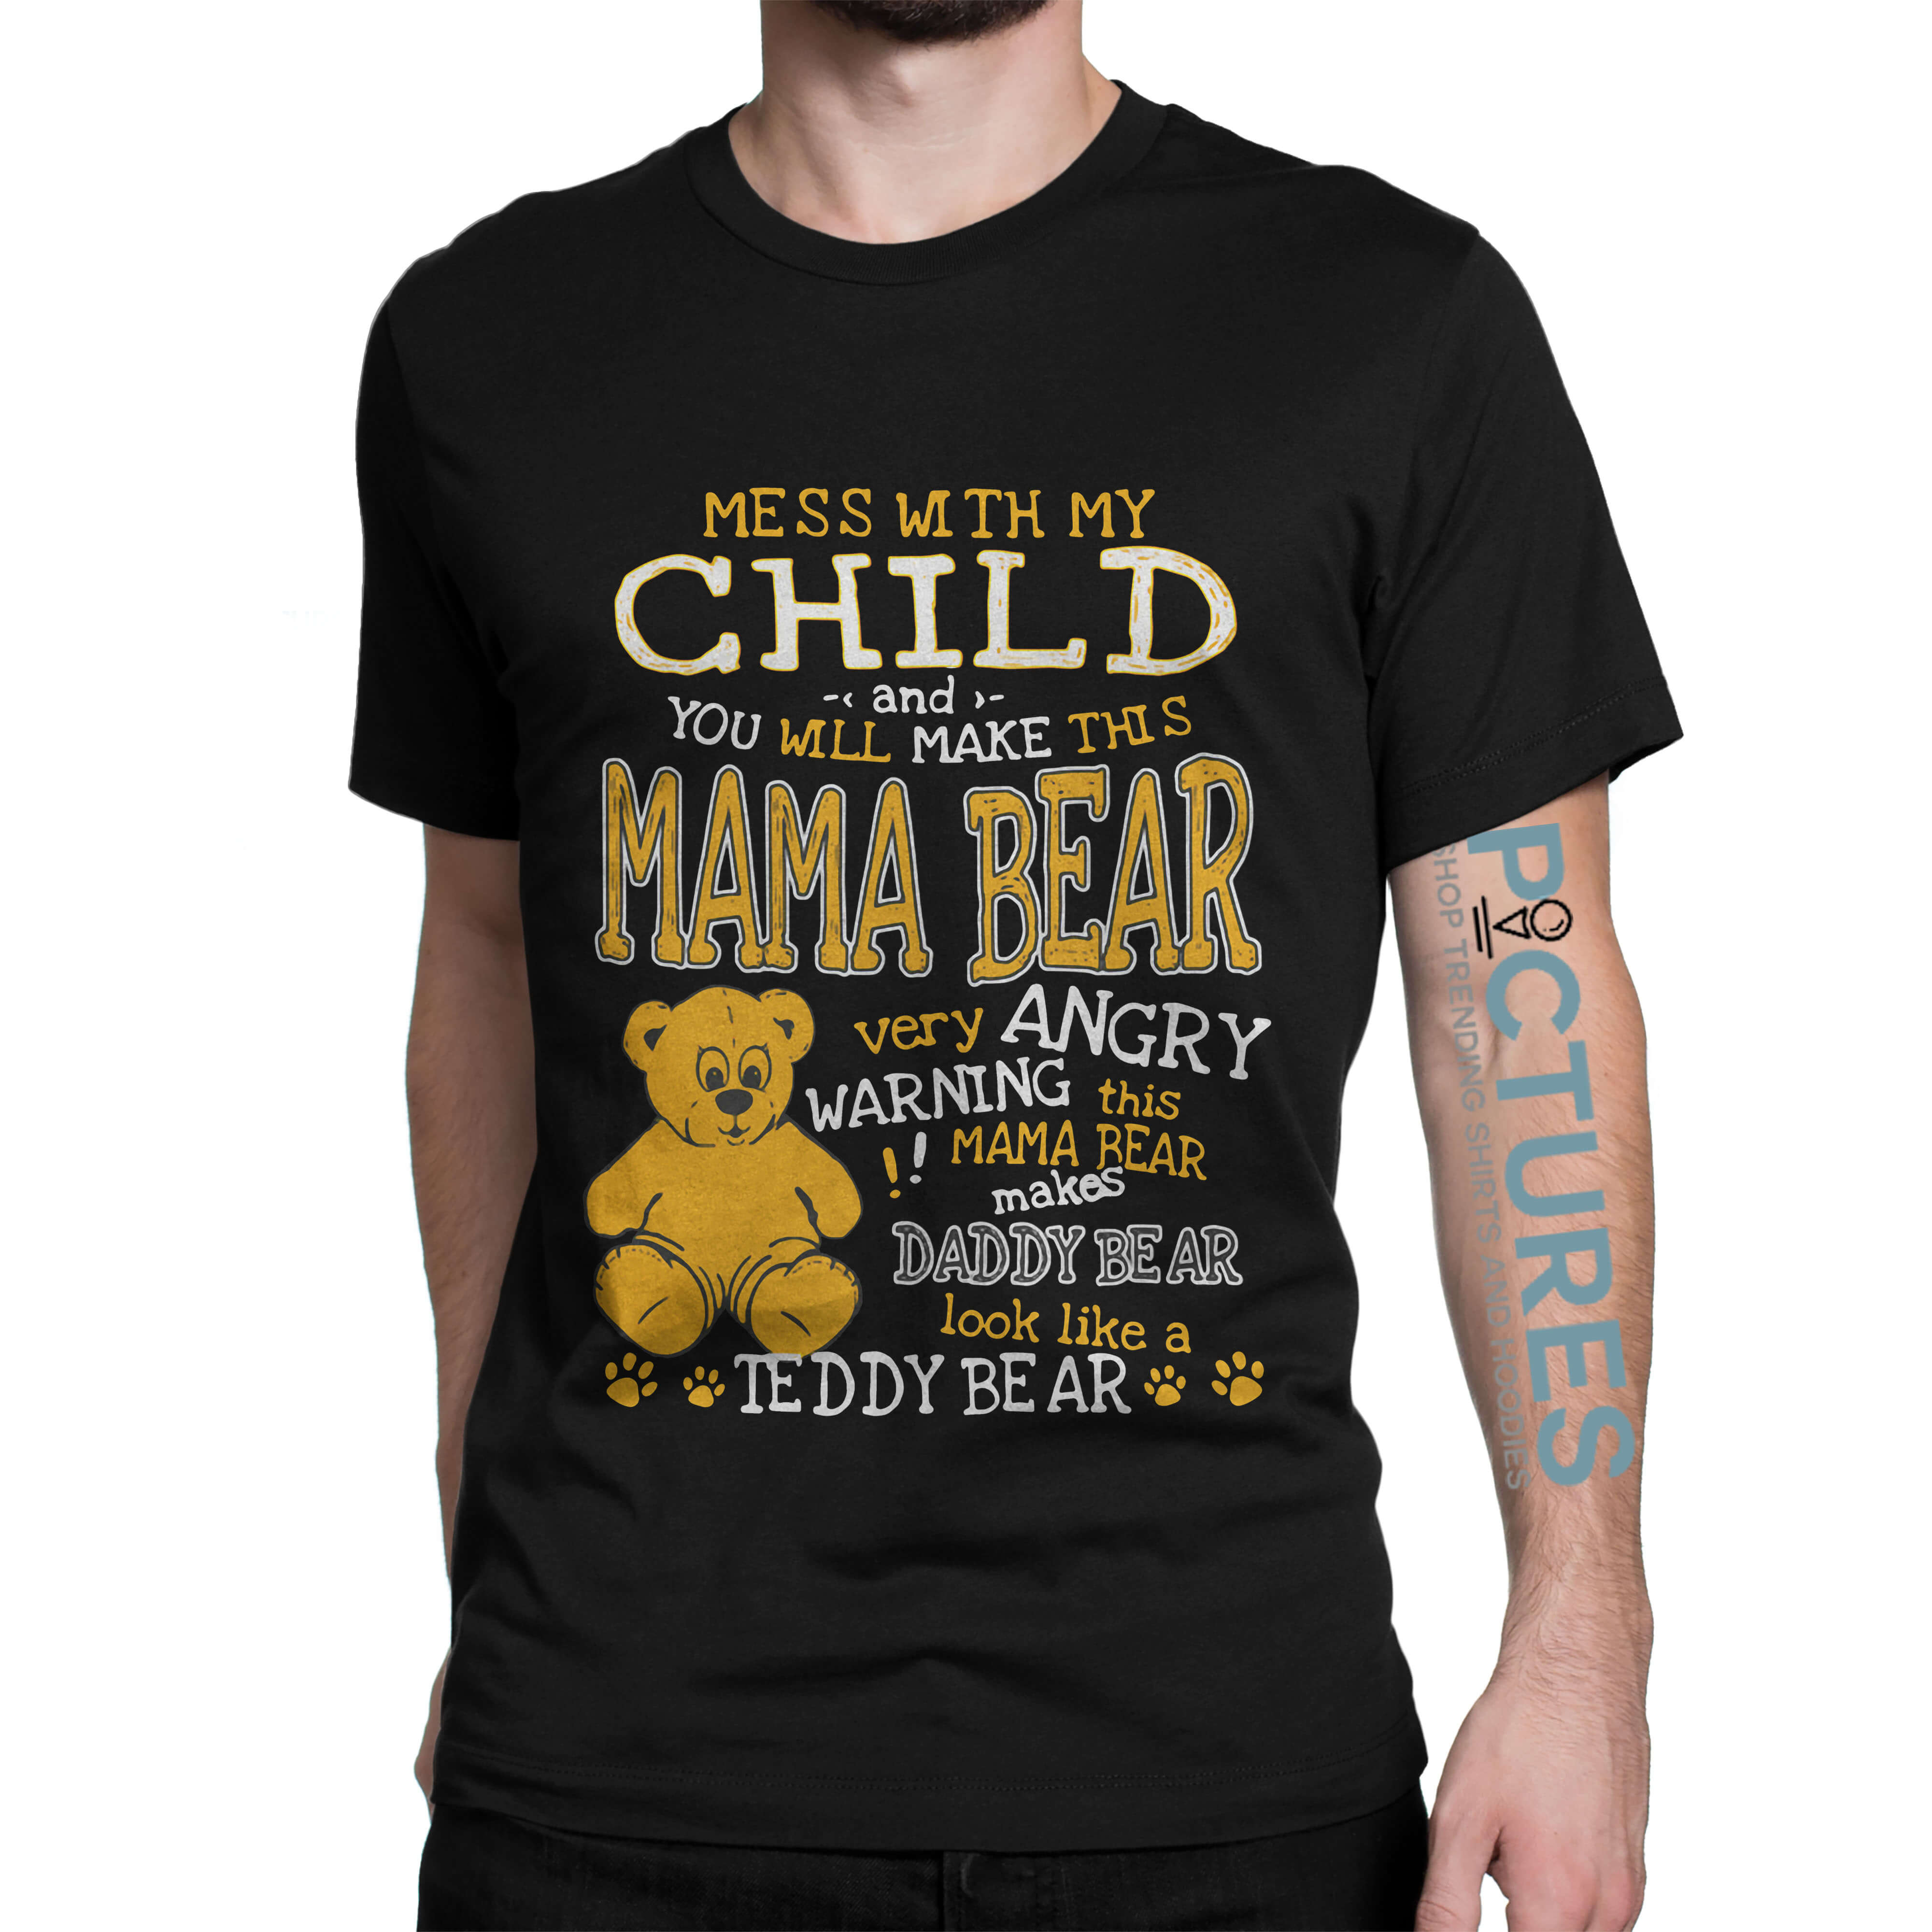 Mess with my child and you will make this mama bear very angry shirt